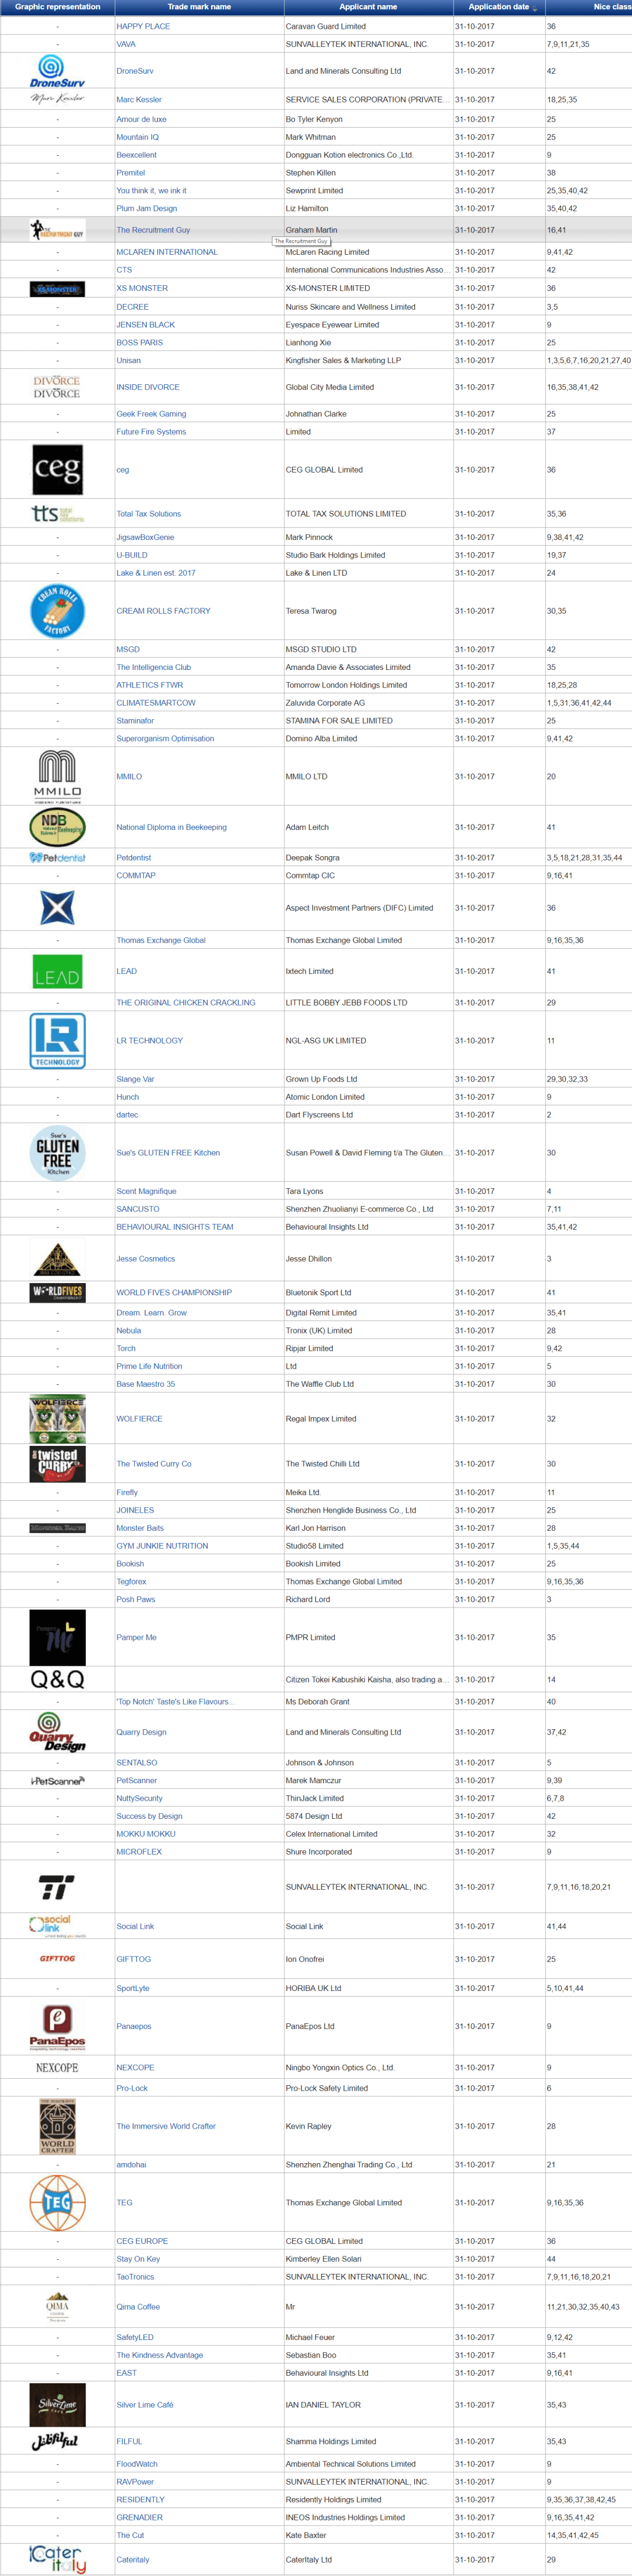 Trademark UK UK Trademark Applications Latest Filings with UK Patents Office 31 October 2017 1 2